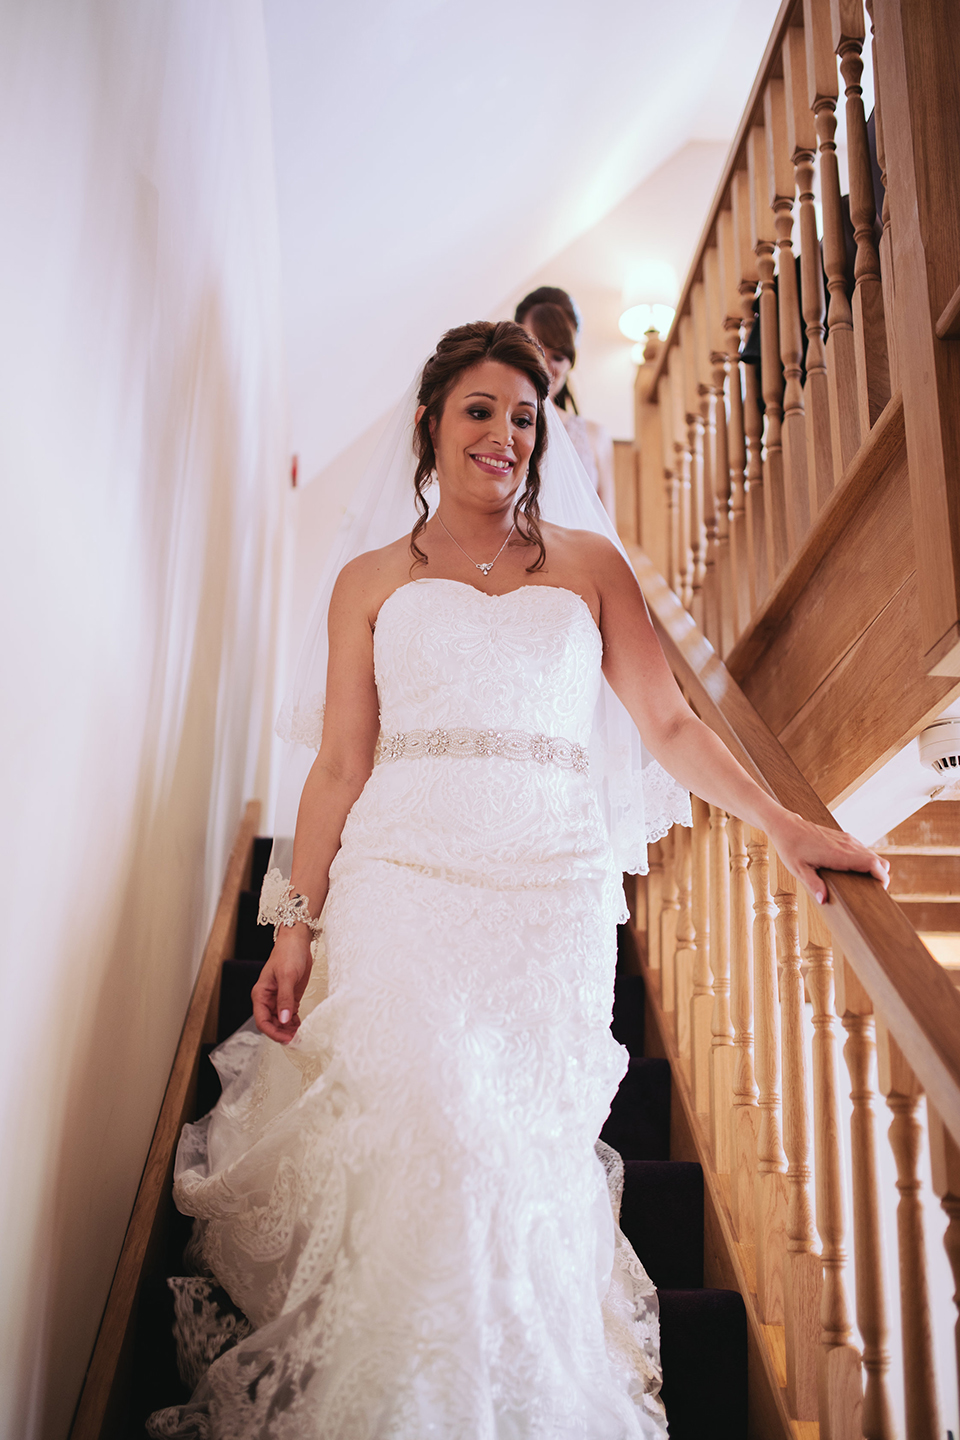 The bride wore a lace fit and flare wedding dress for her summer wedding at Bassmead Manor Barns